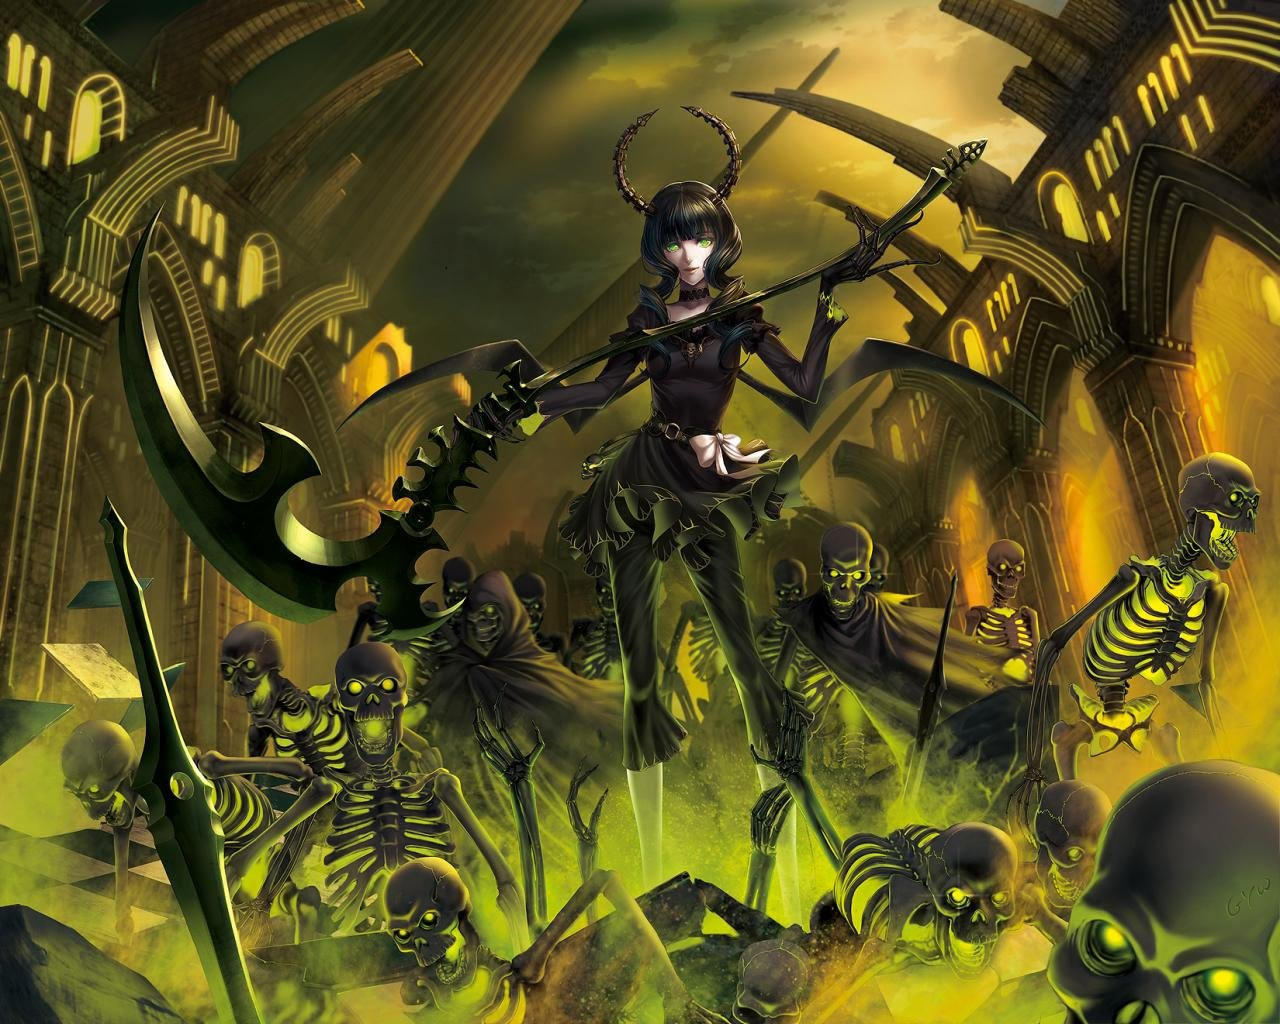 Best Dead Master (Black Rock Shooter) background ID:454972 for High Resolution hd 1280x1024 desktop